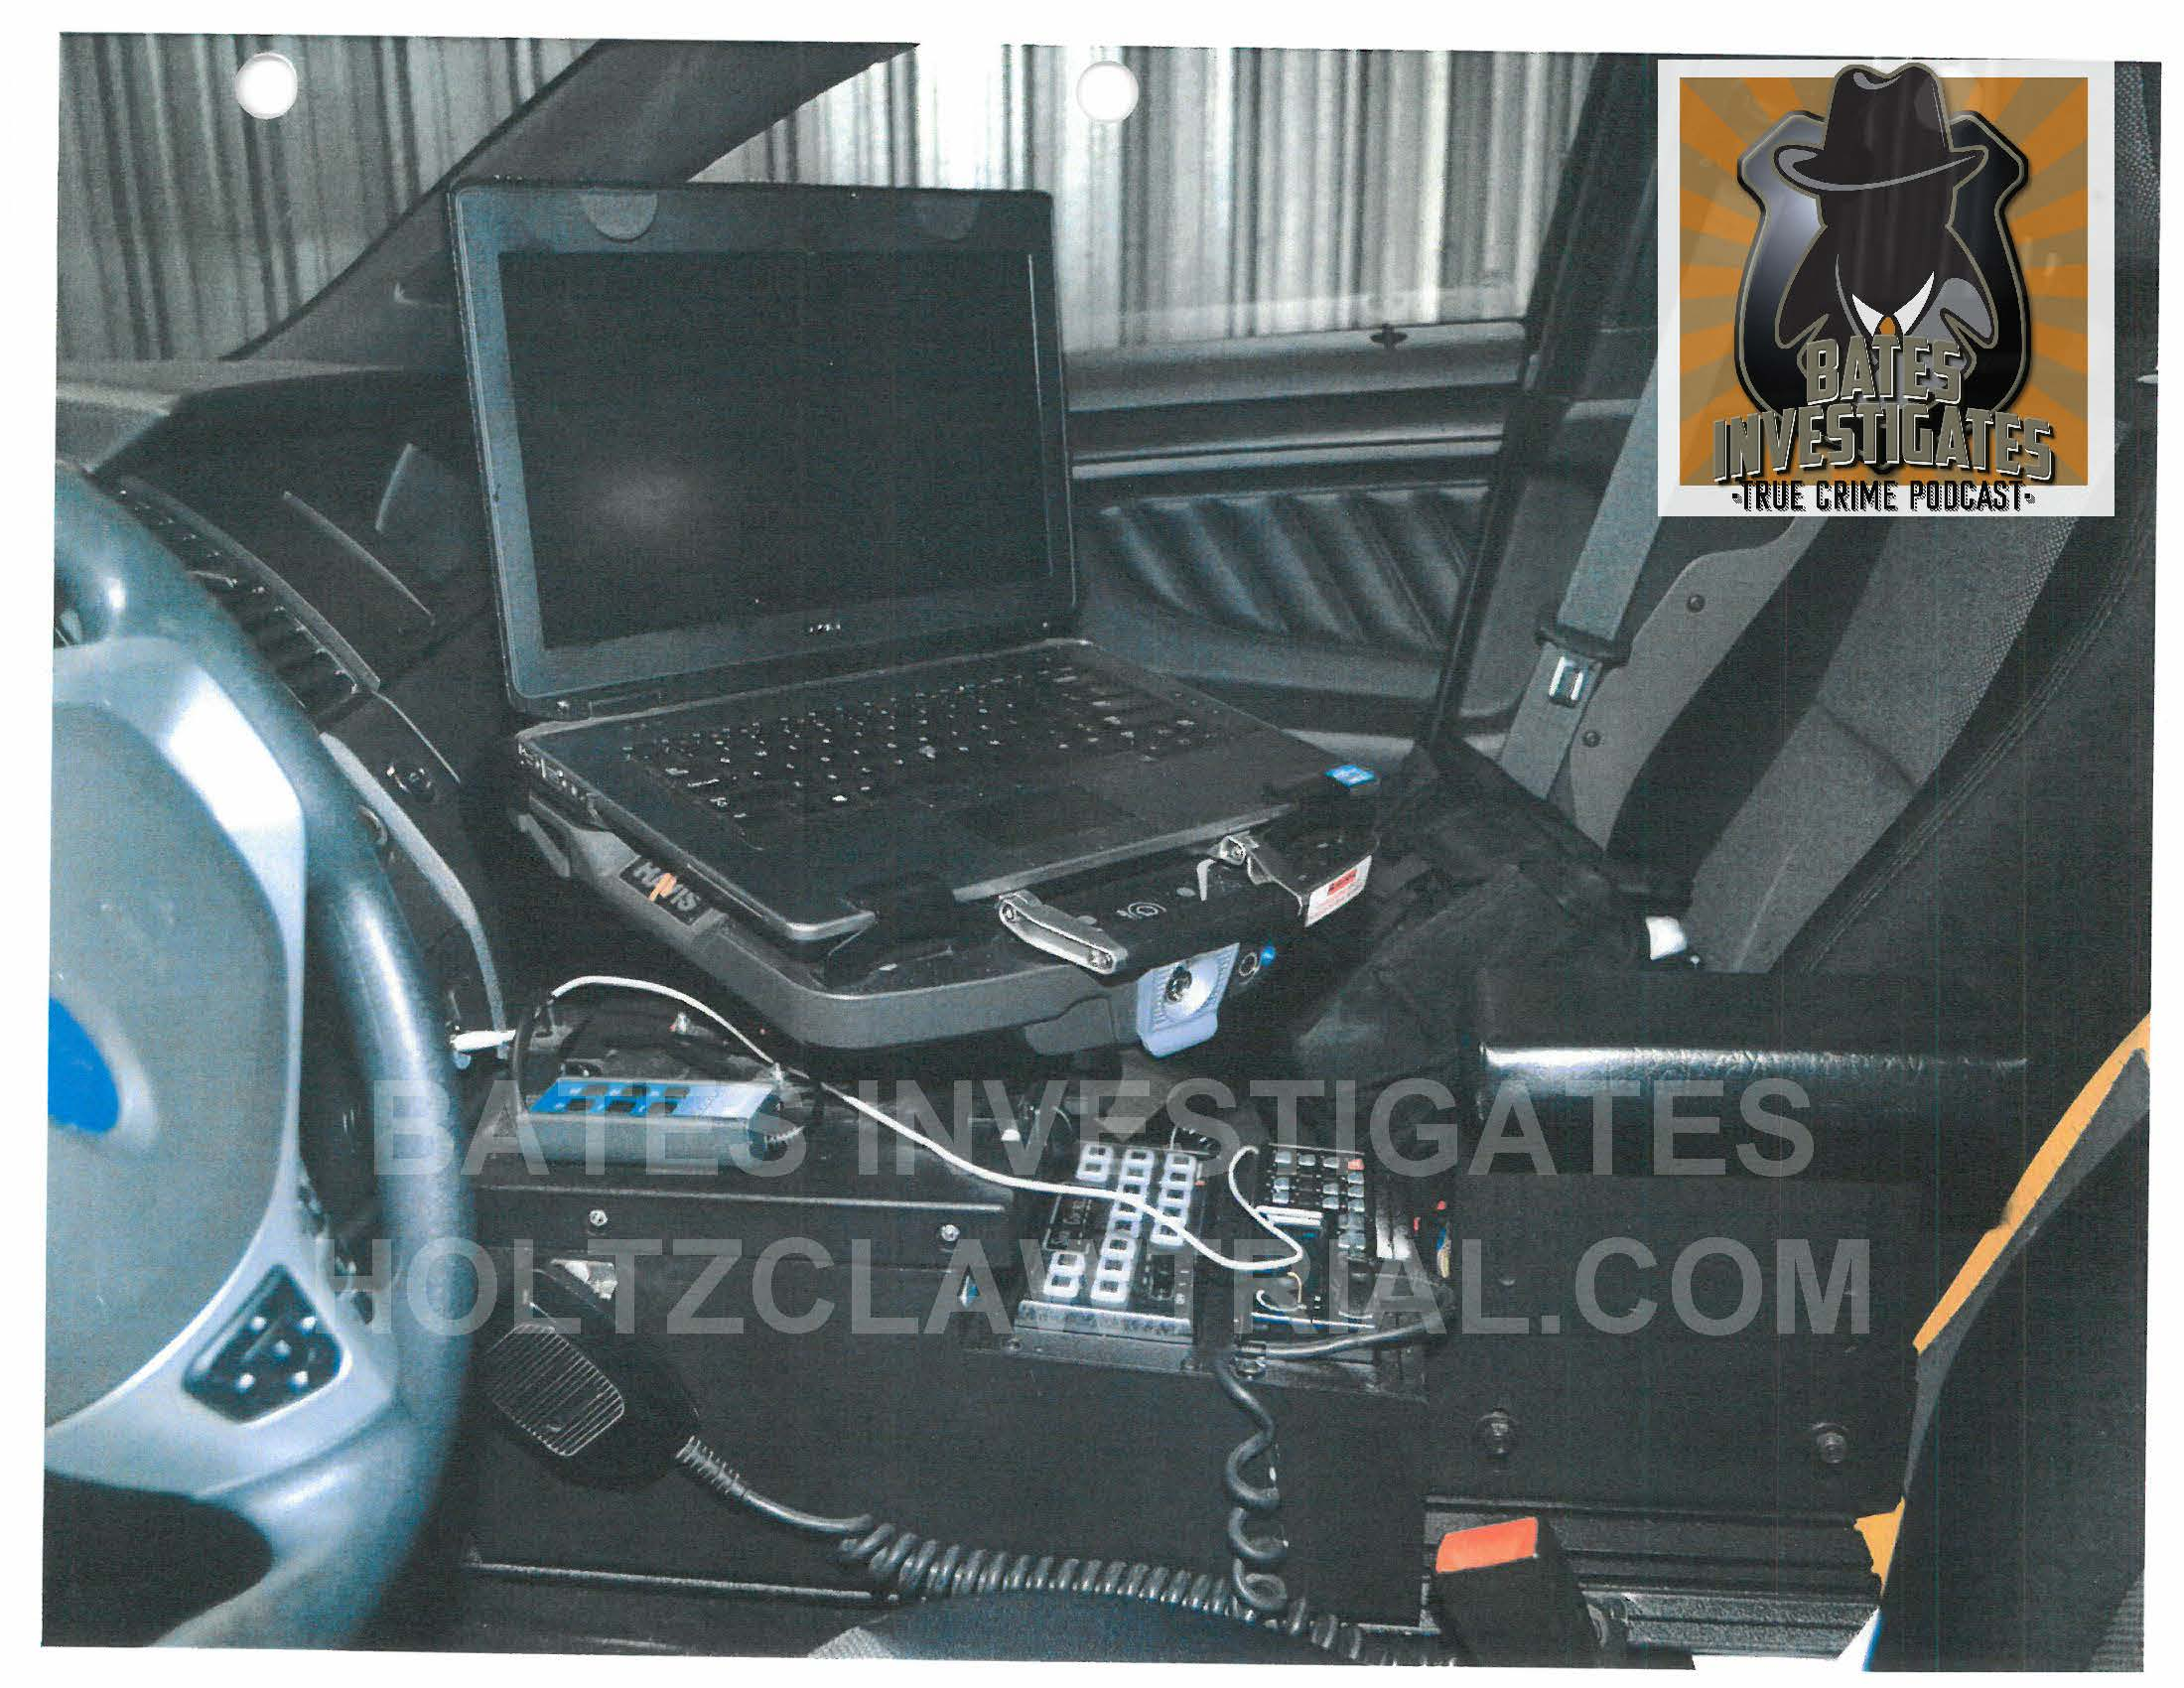 Holtzclaw Daniel - OCPD Patrol Car Photos Watermarked_Page_40.jpg